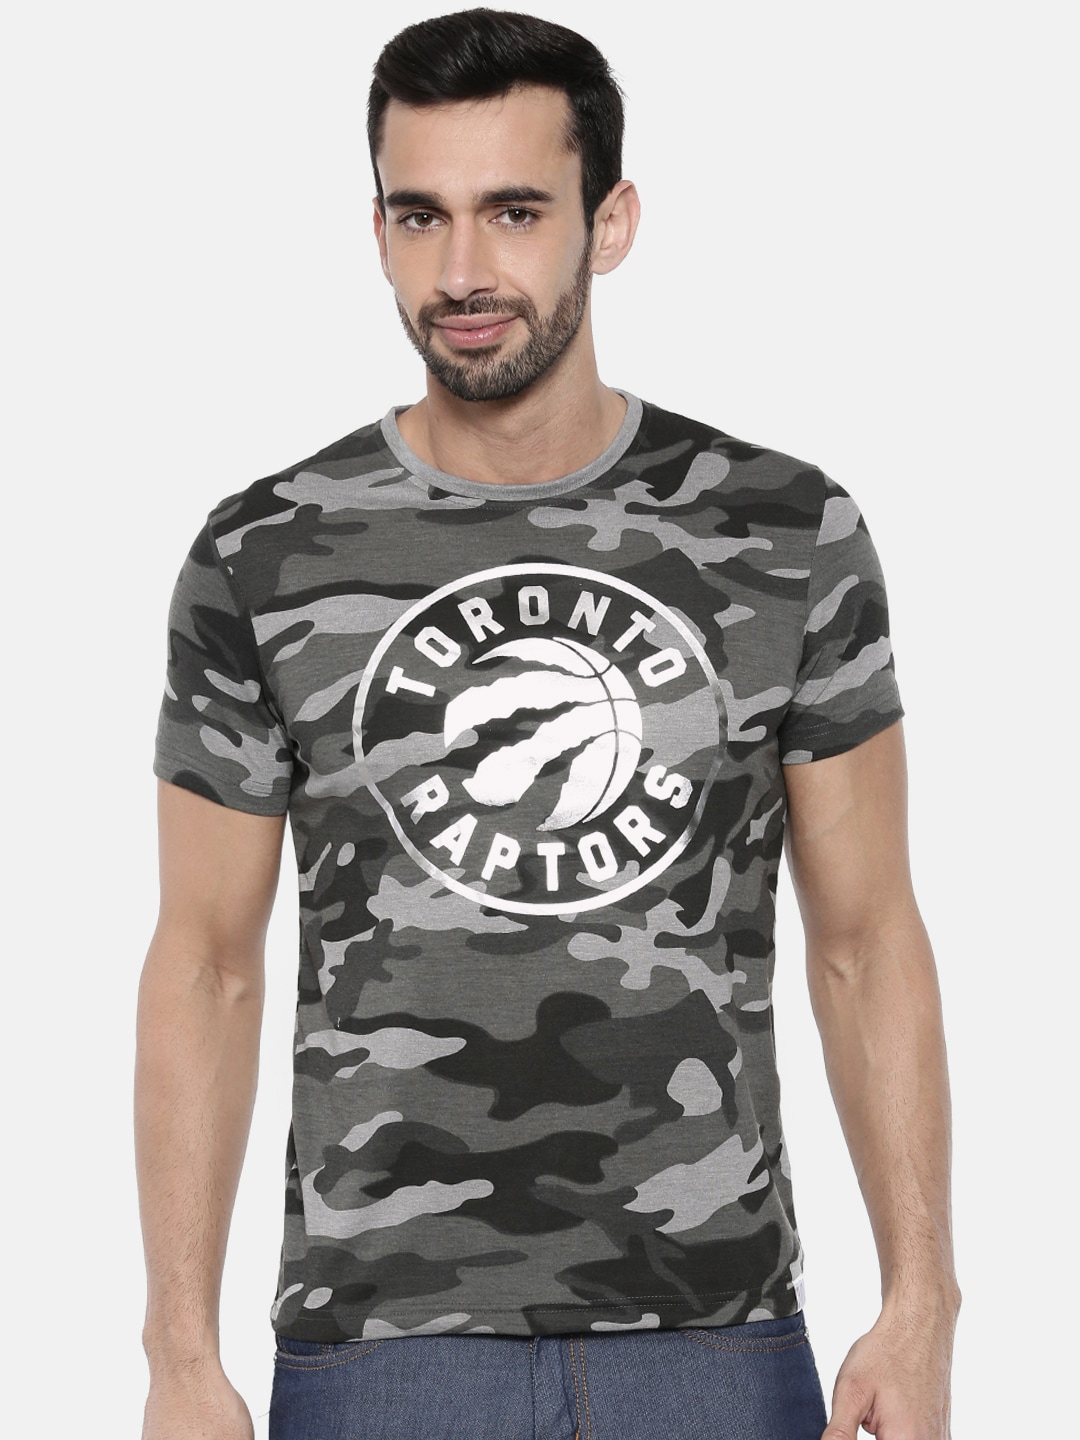 6e941b821cb Camouflage Tshirts - Buy Camouflage Tshirts online in India